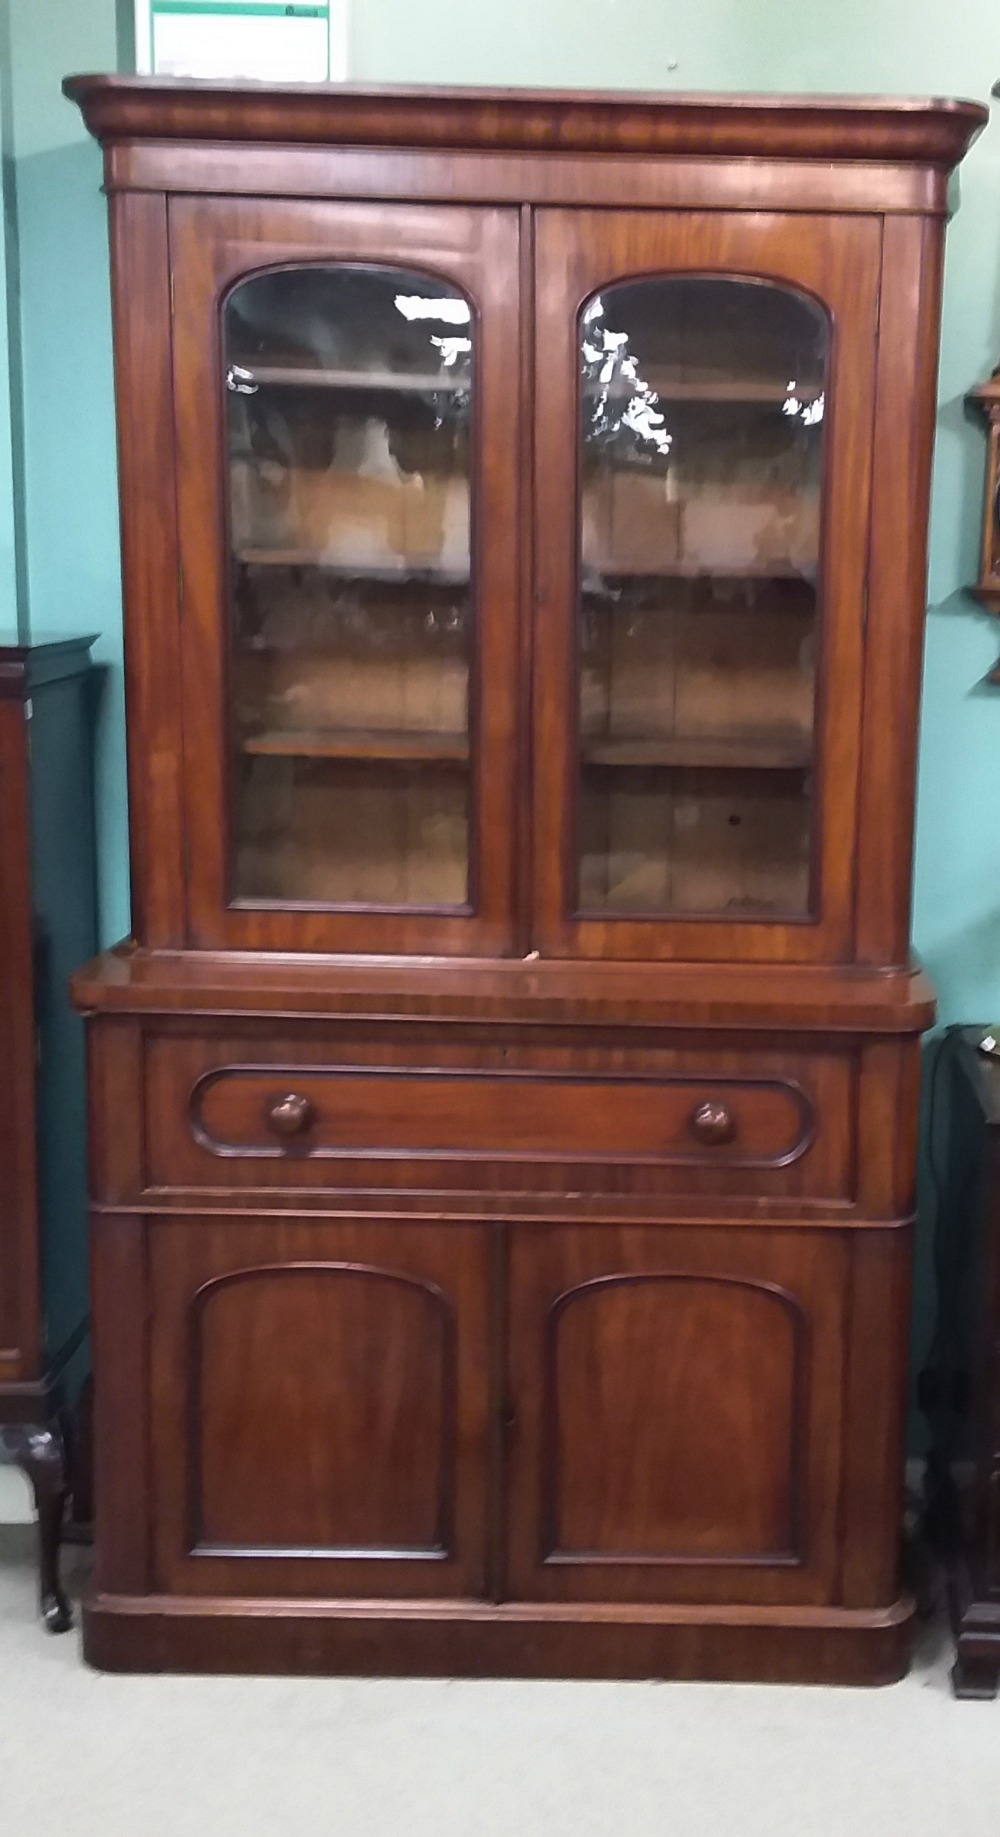 Lot 39 - Vict Mahogany Arched Door Secretaire Bookcase Dimensions:130cm W 50cm D 220cm H